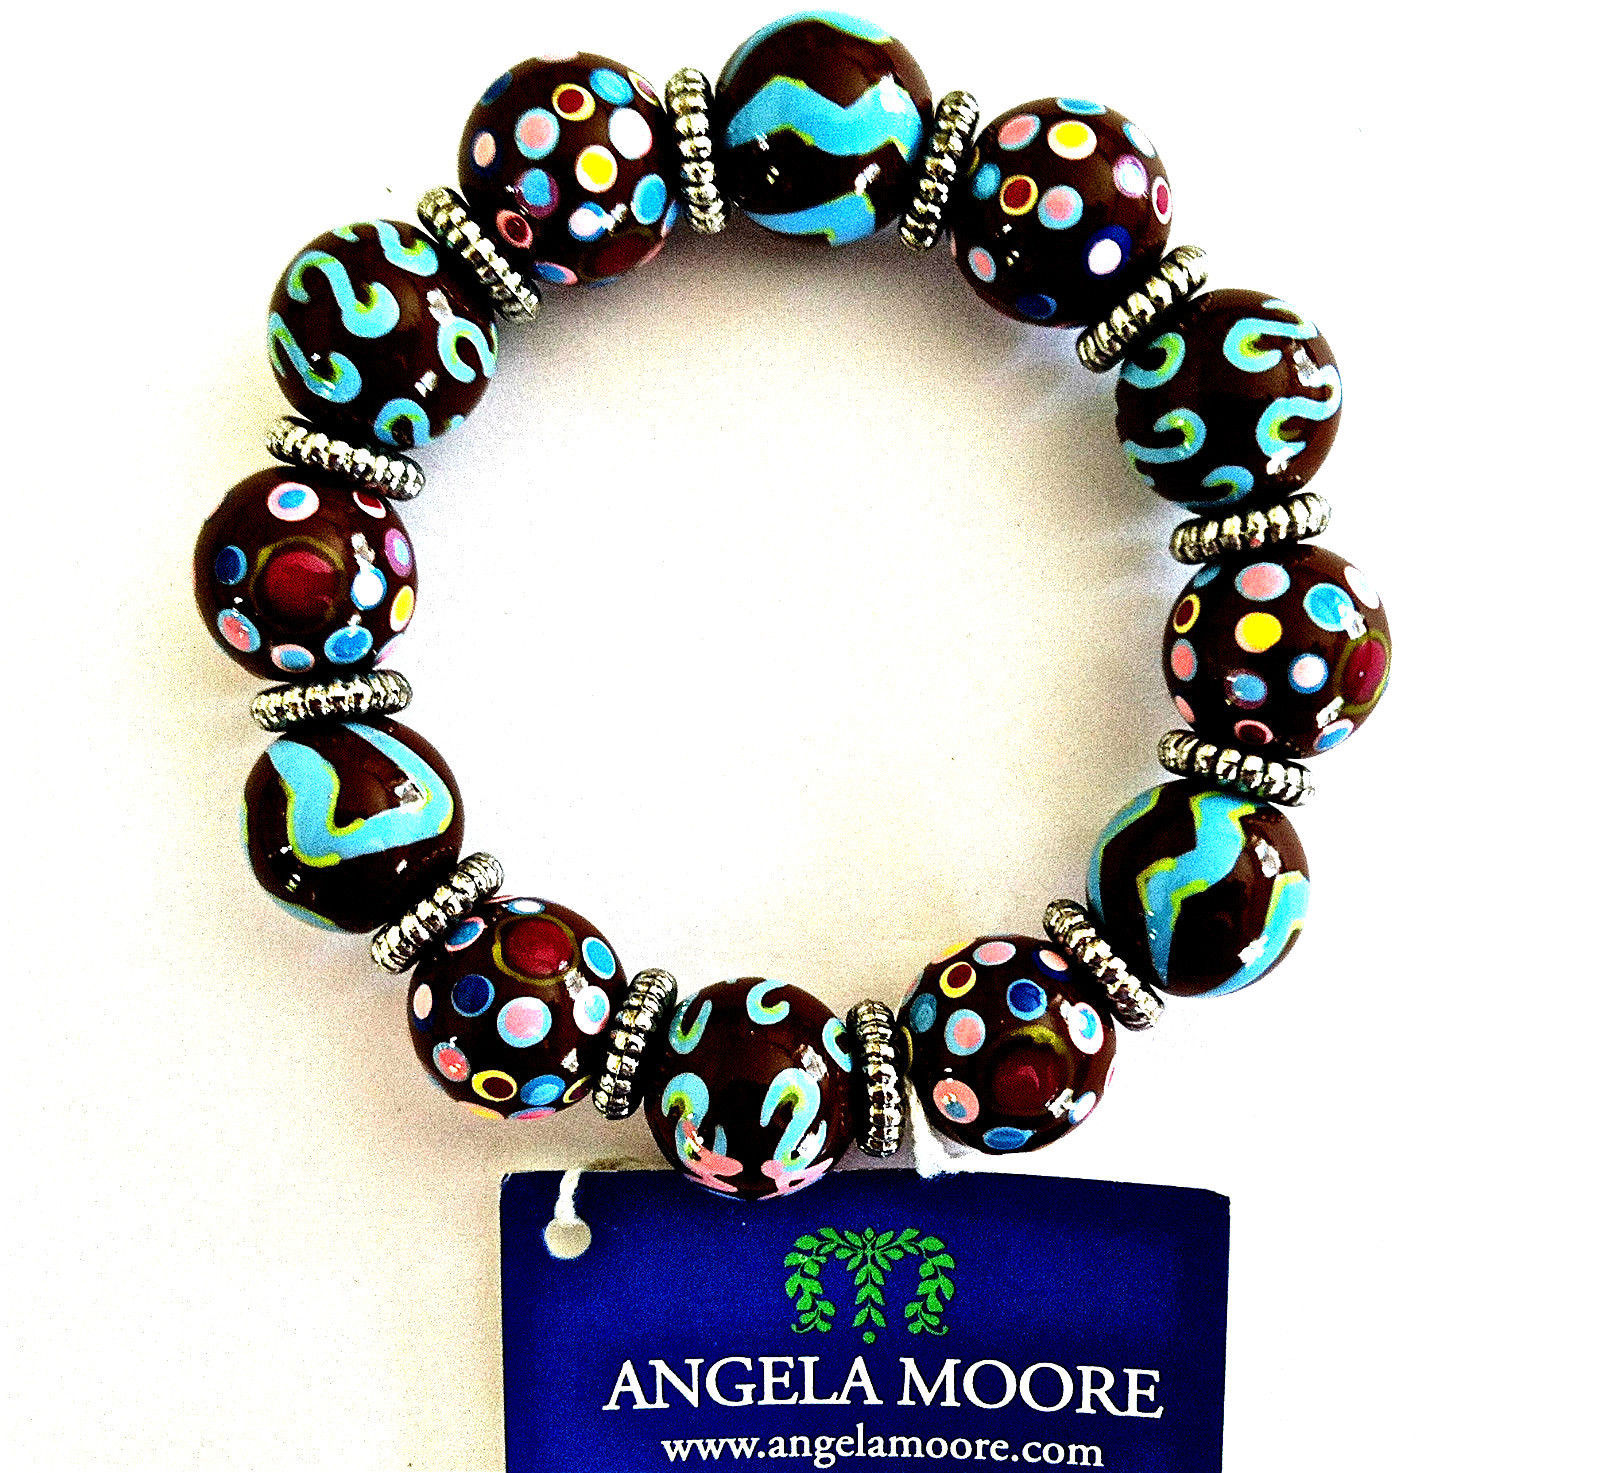 NEW ANGELA MOORE BROWN TEAL PINK BRACELET SILVER SPACERS POLKO DOTS & STRIPES image 5